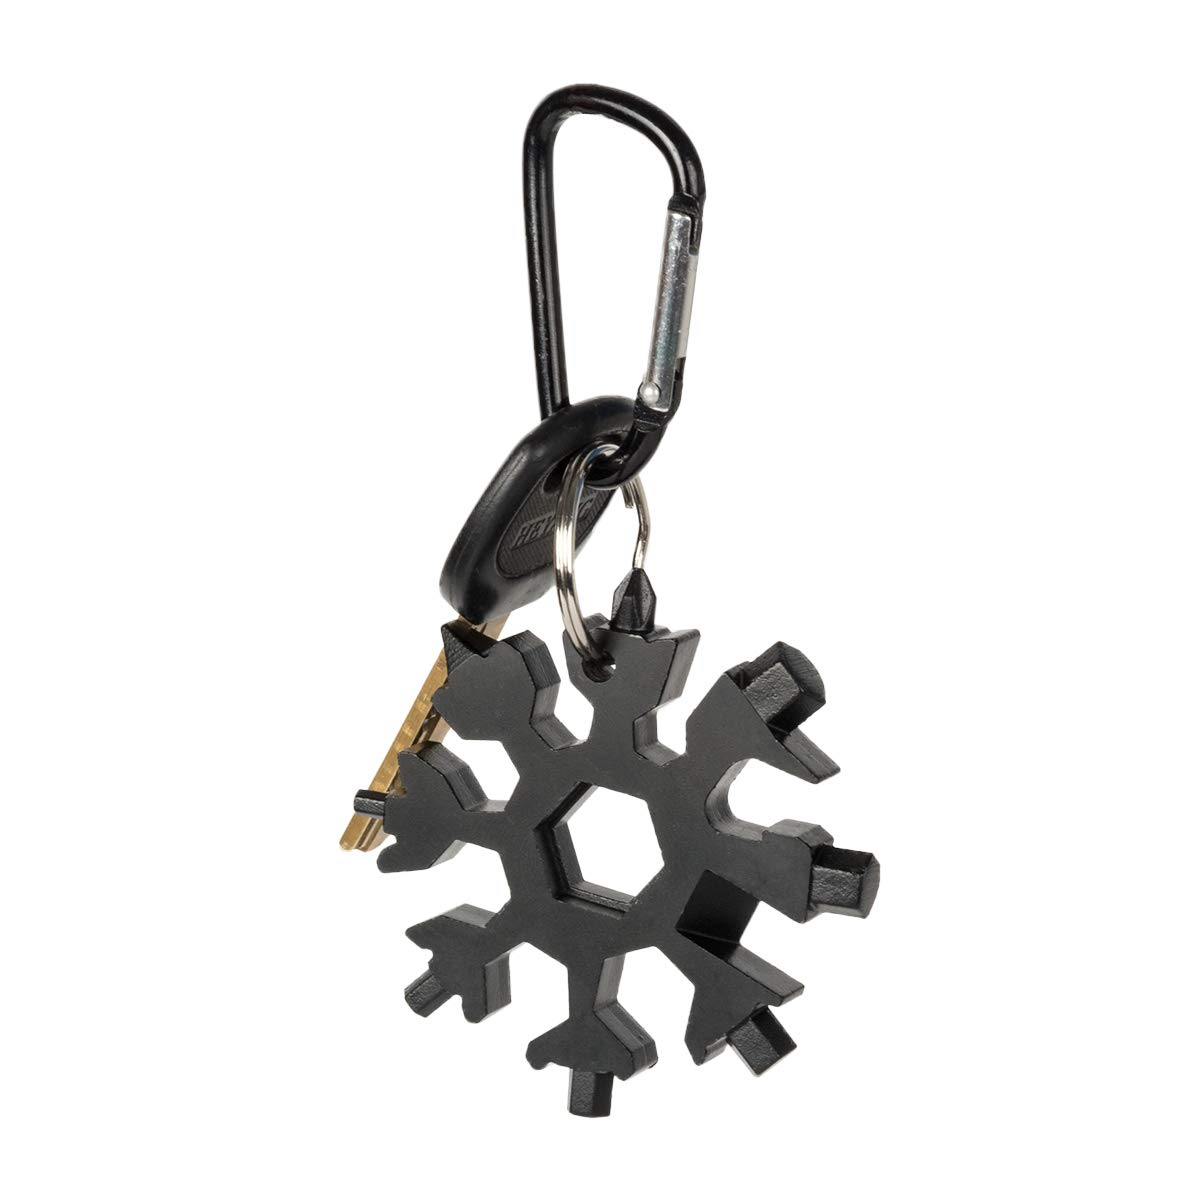 19-in-1 Snowflake Multi-Tool Stainless Steel - 4YOUALL Compact Portable Outdoor Adventure Snowflake Tool Combination Standard/Metric Screwdriver Beer Bottle Opener Hanging Keychain (Black)